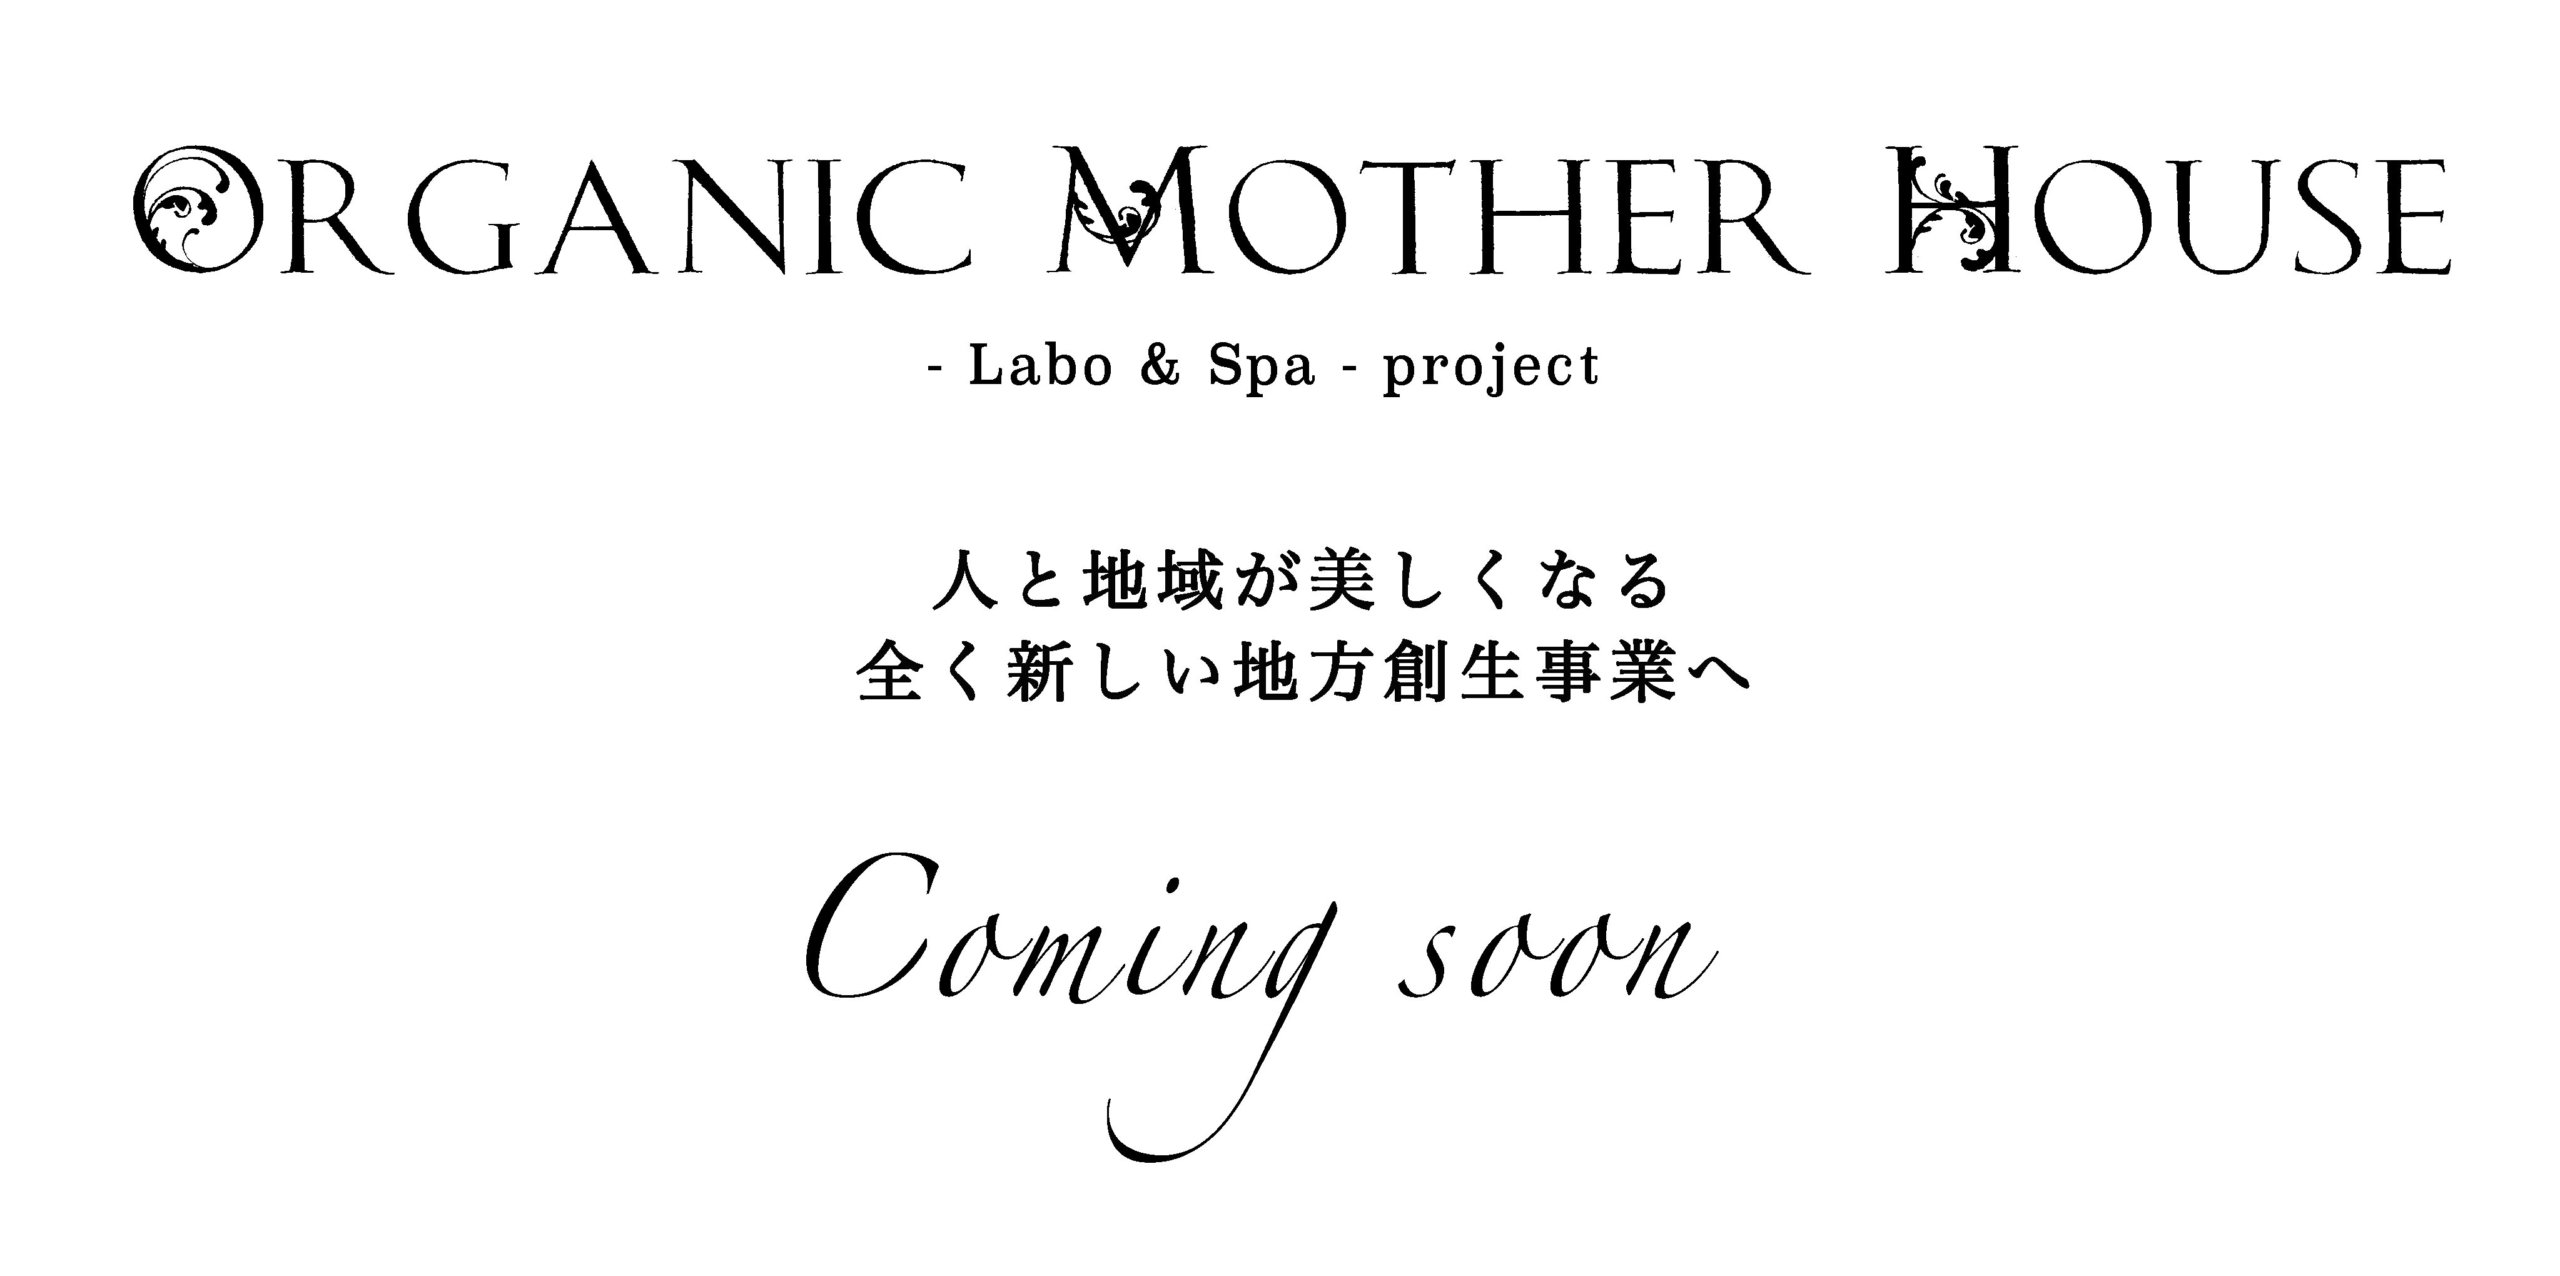 Organic Mother House